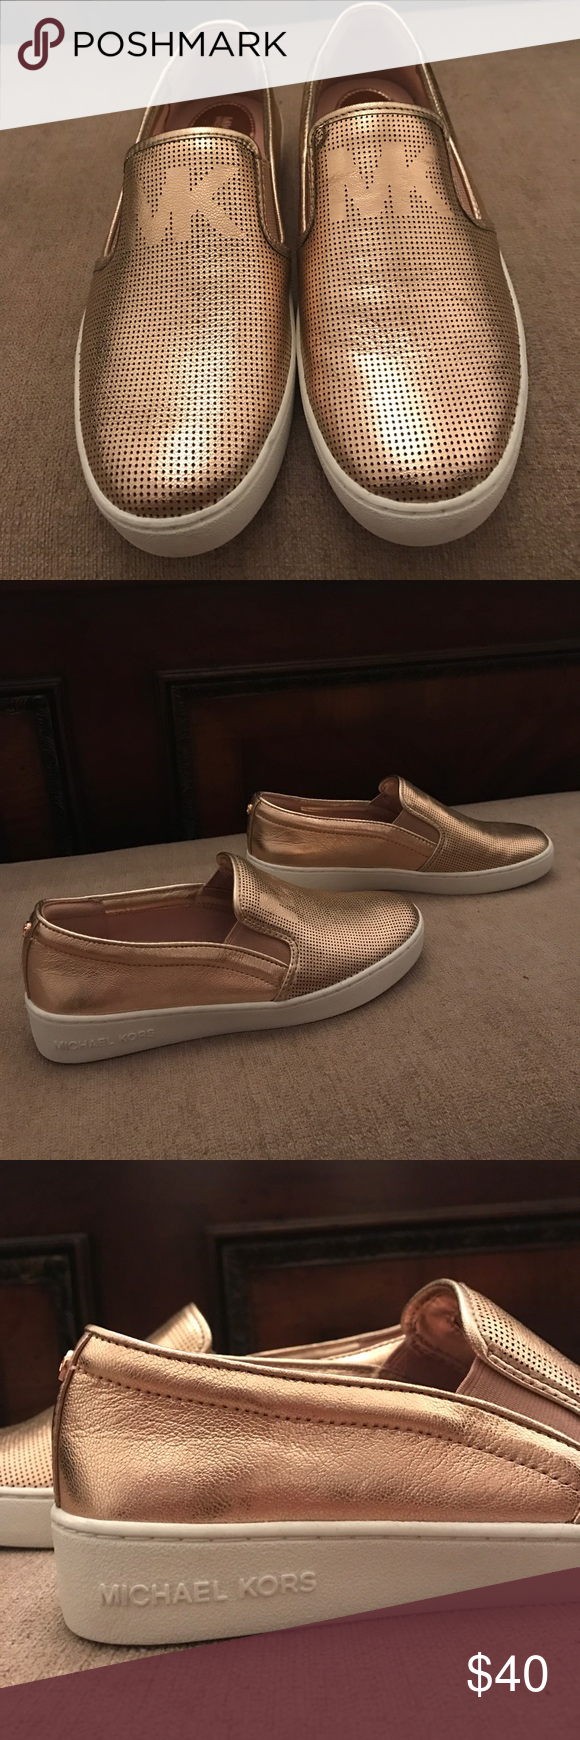 ae53988c622ca Michael kors slip on shoes Rose Gold Metallic accent Slip Ons. Fashion  Sneakers by Michael Michael Kors size 6 with a cushioned footbed.